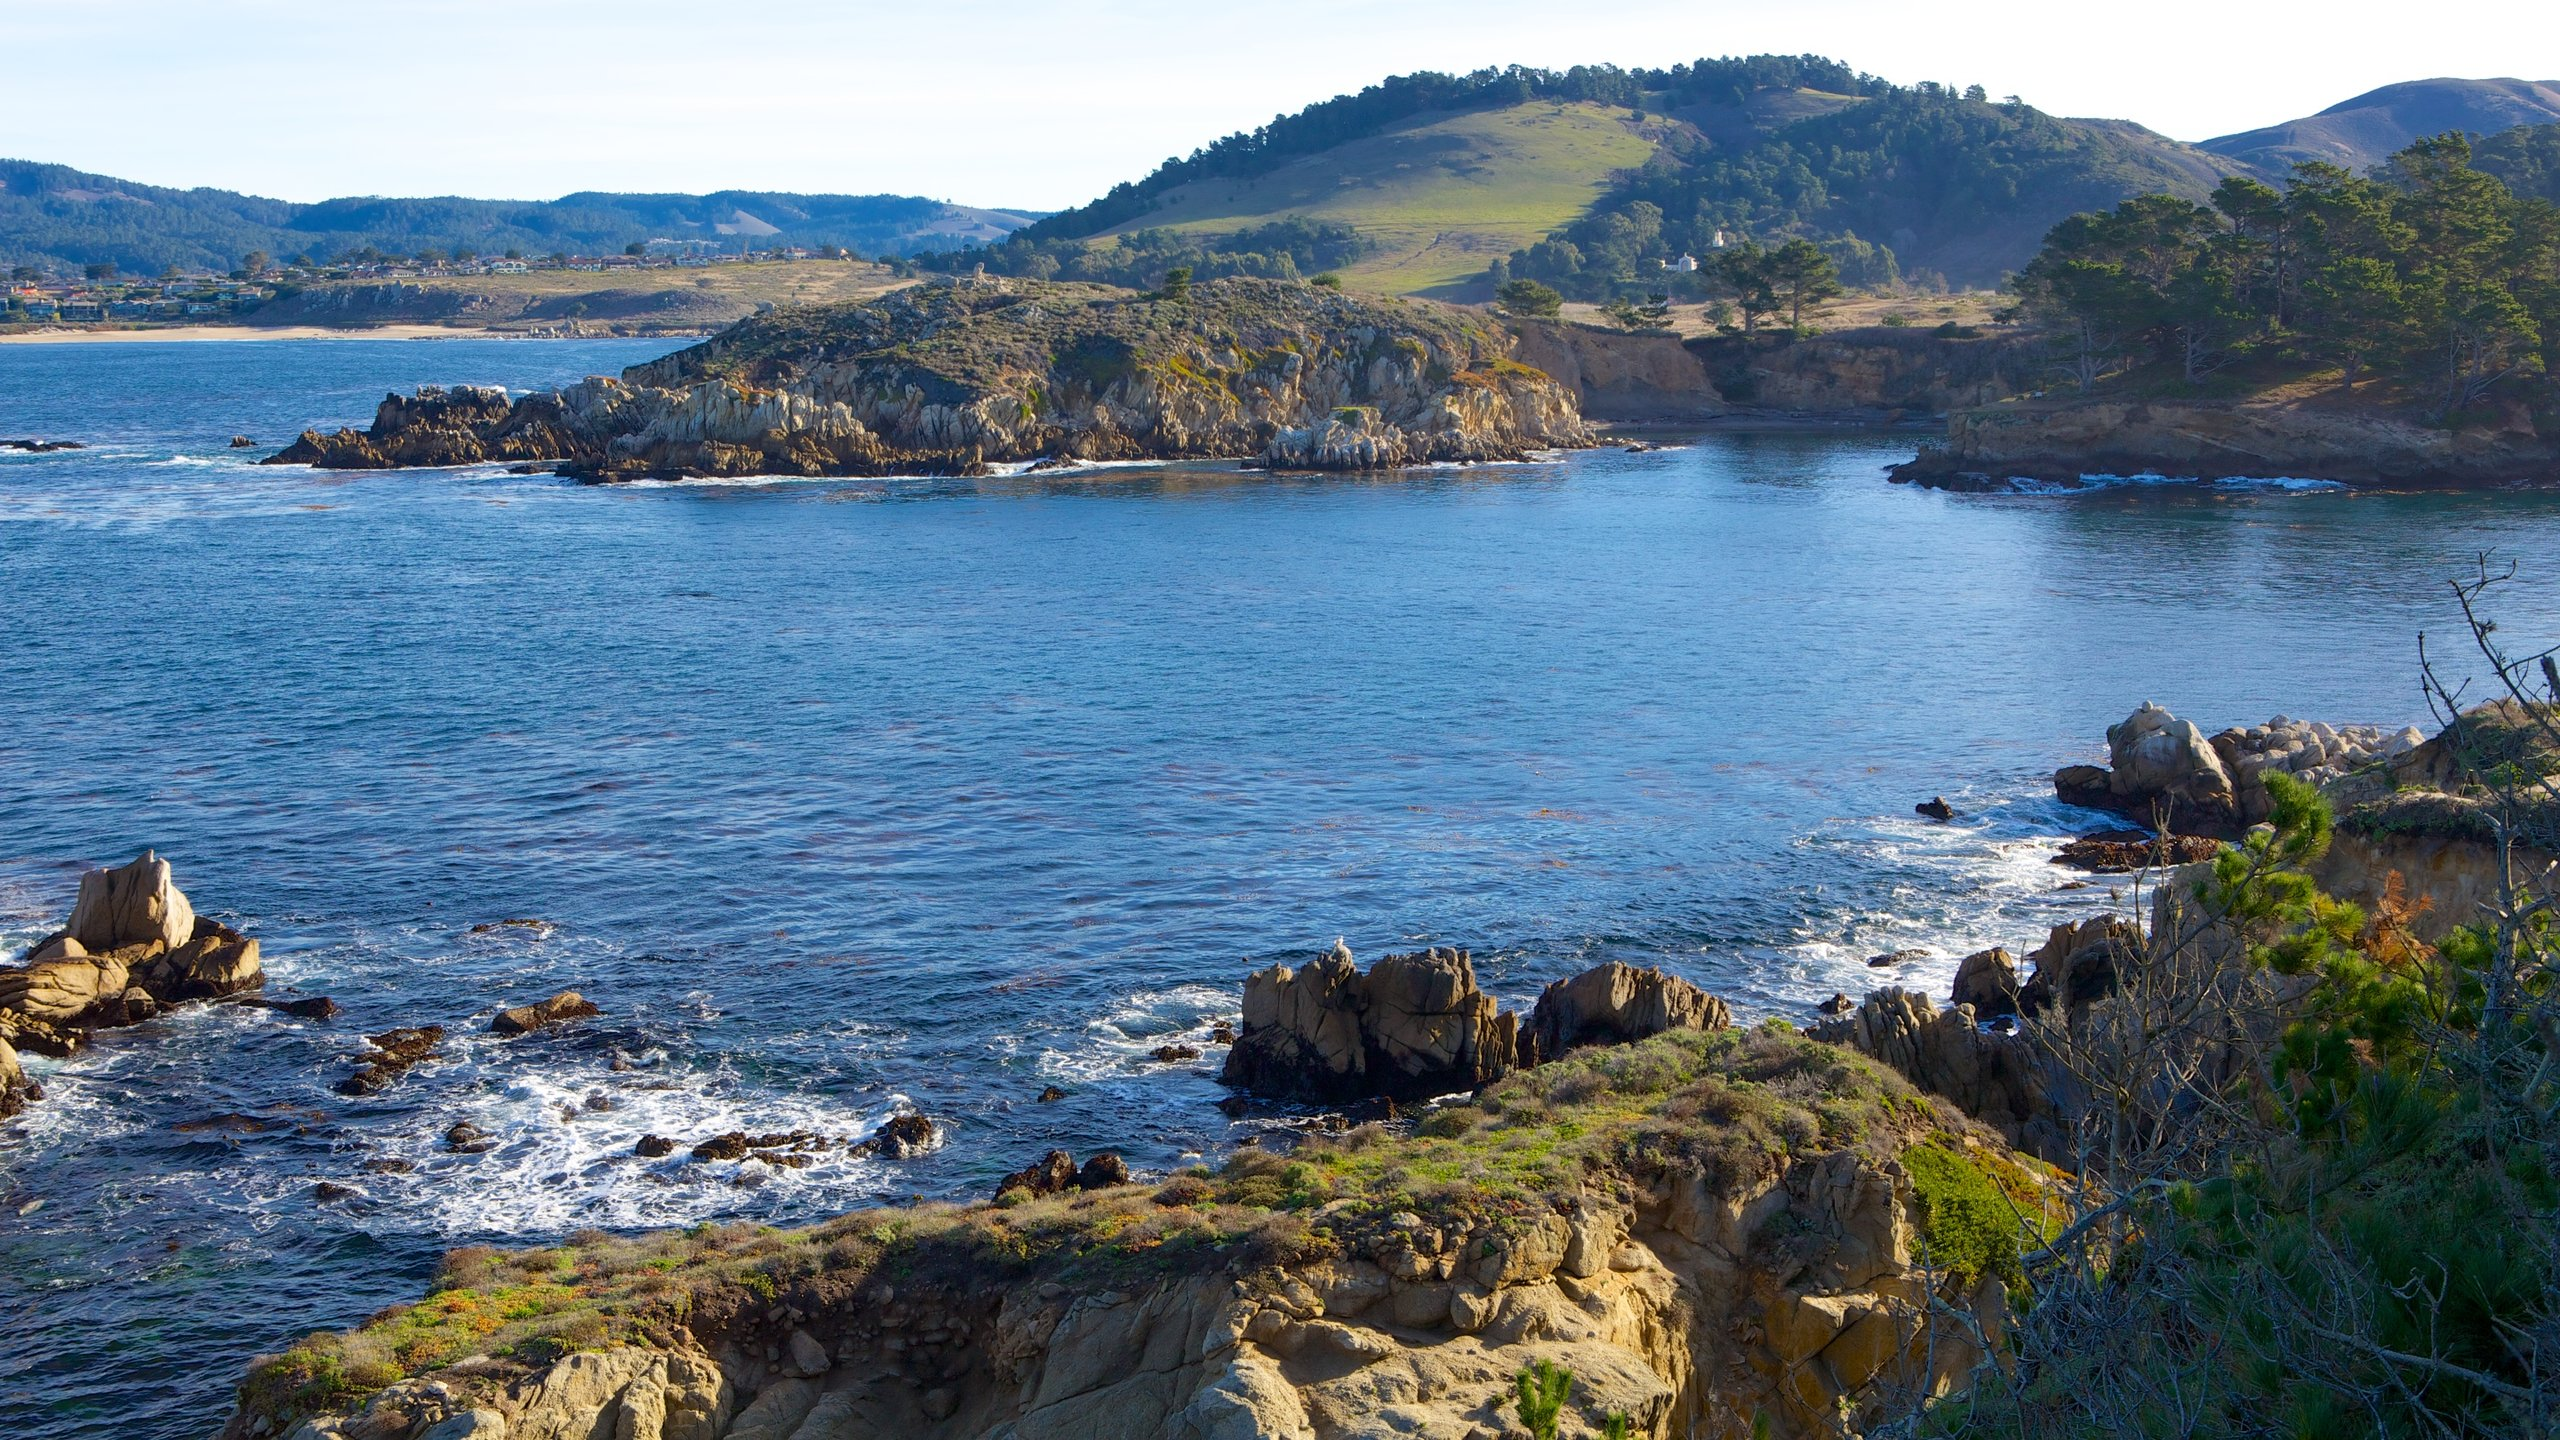 Point Lobos State Natural Reserve, Carmel, California, United States of America